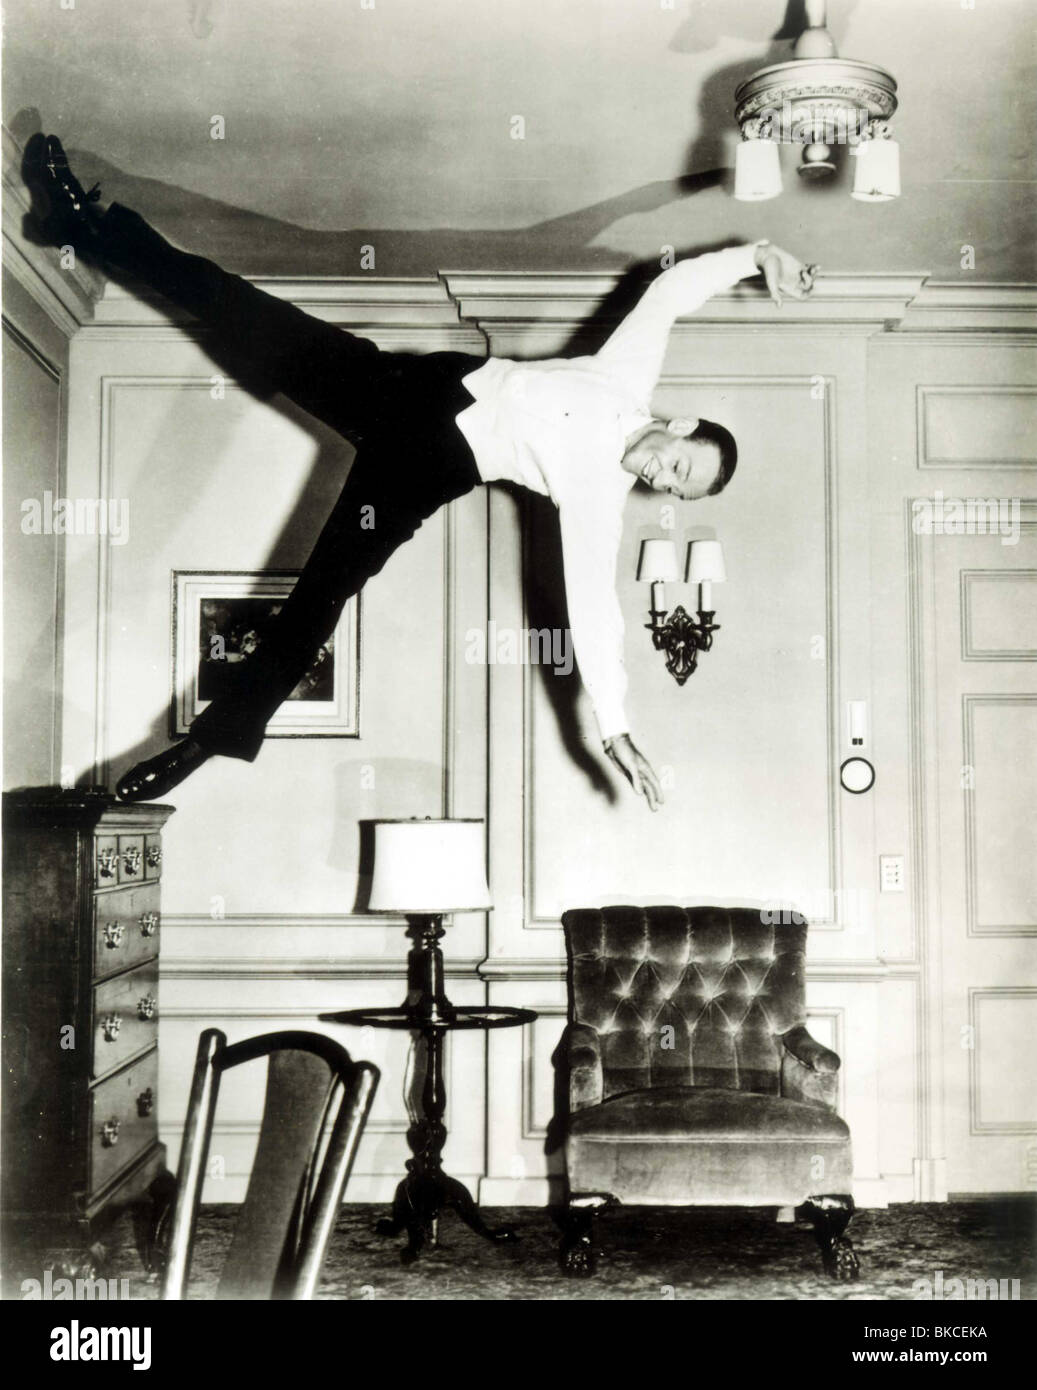 FRED ASTAIRE PORTRAIT - Stock Image